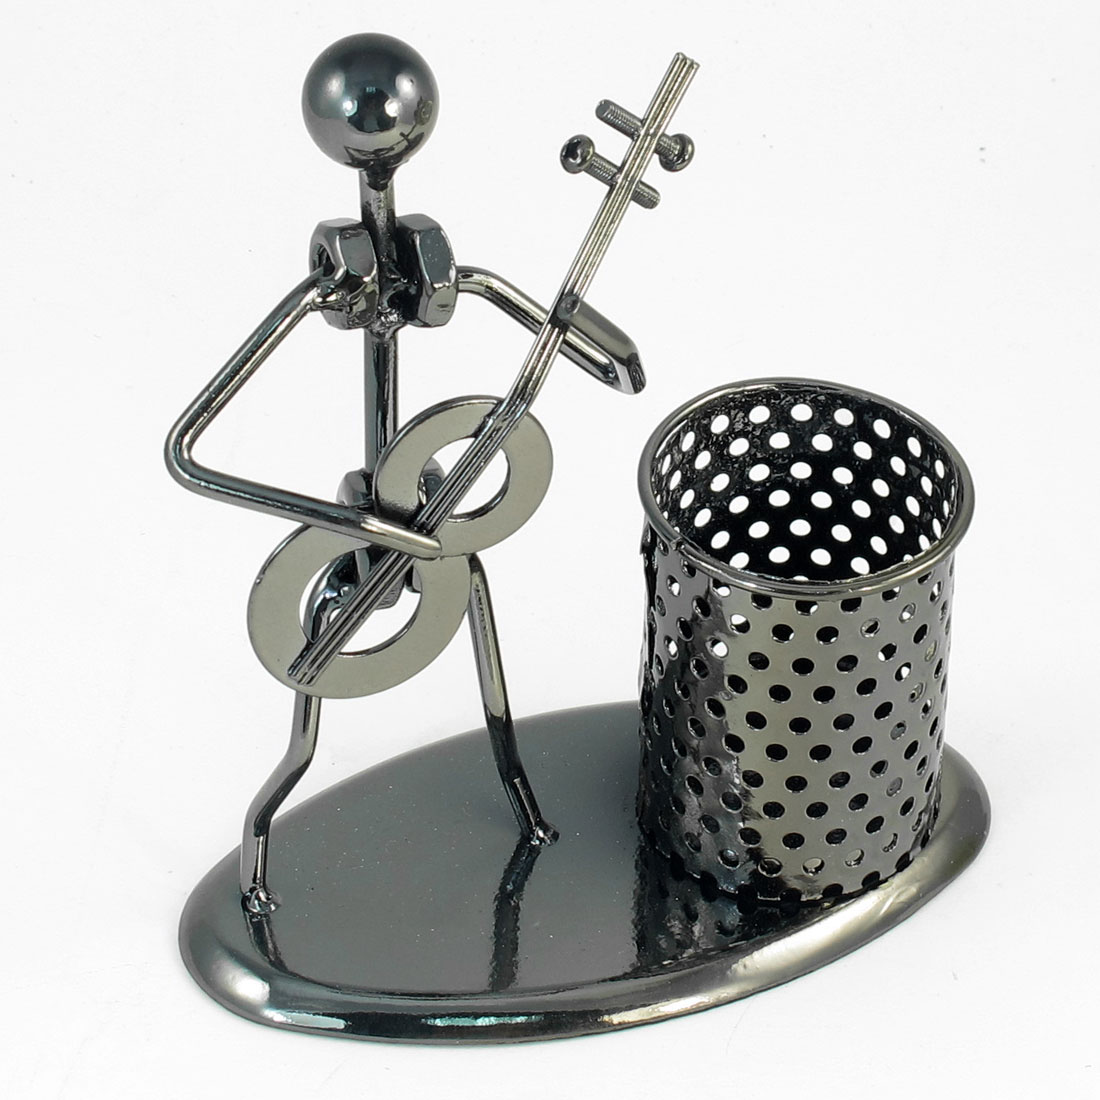 Cello Man Decor Cylinder Dark Gray Metallic Desktop Pen Holder